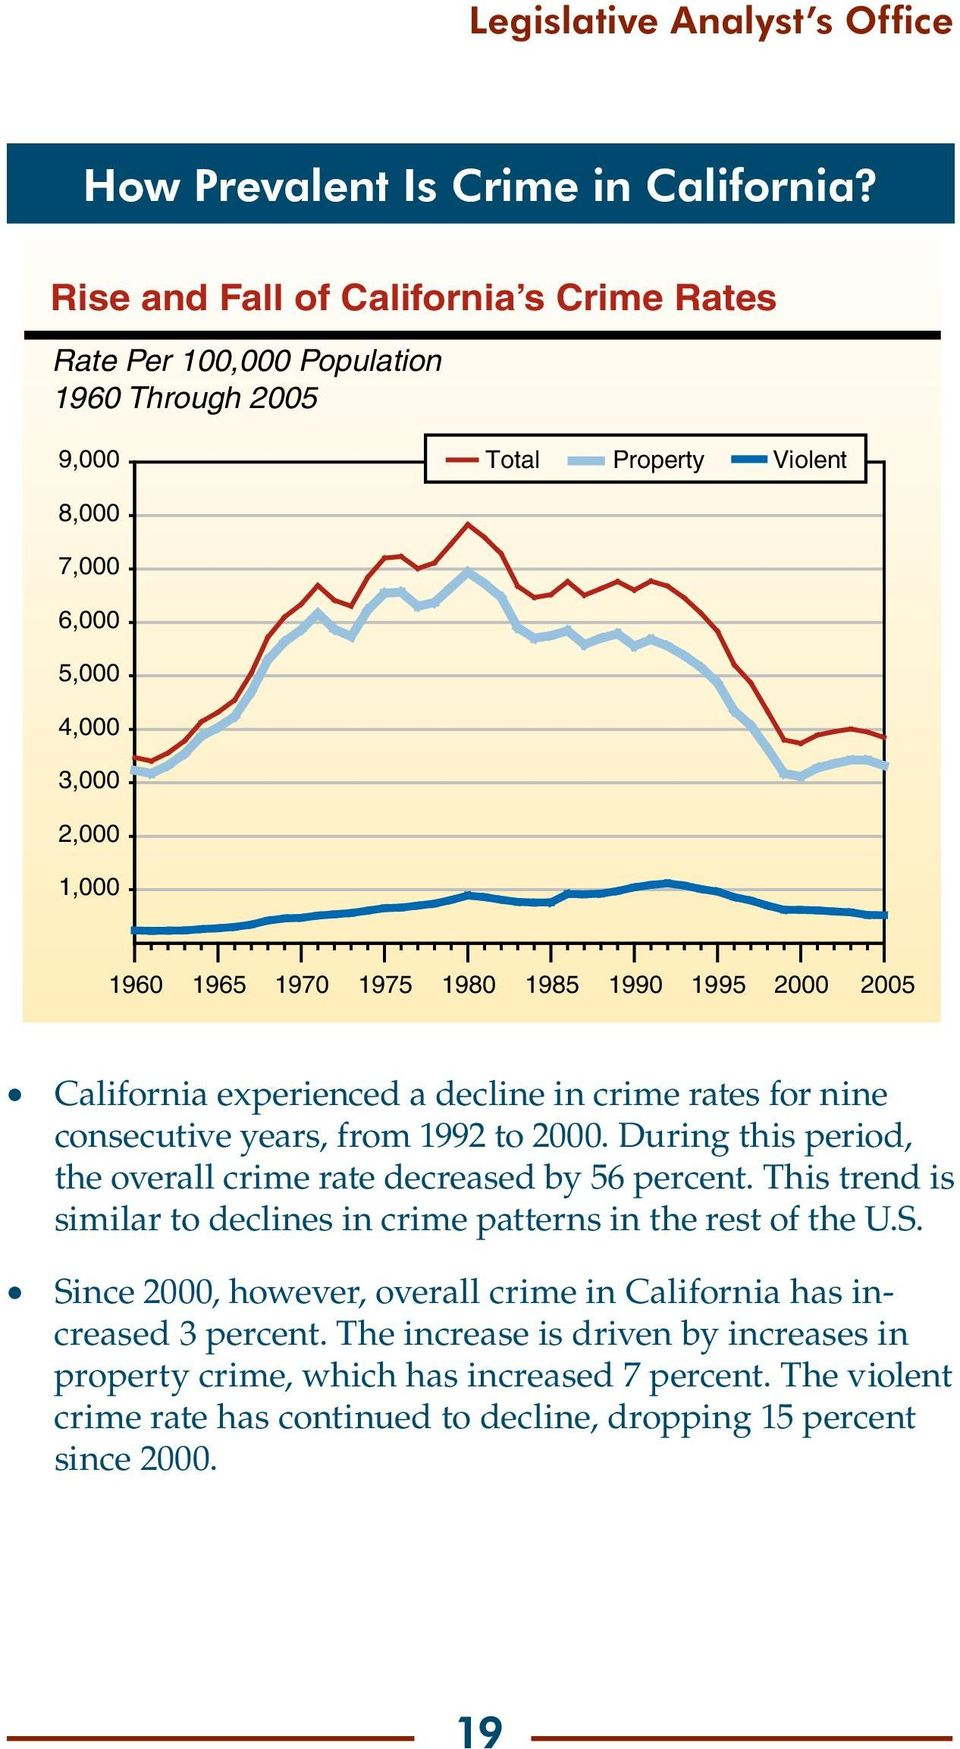 1985 1990 1995 2000 2005 California experienced a decline in crime rates for nine consecutive years, from 1992 to 2000. During this period, the overall crime rate decreased by 56 percent.